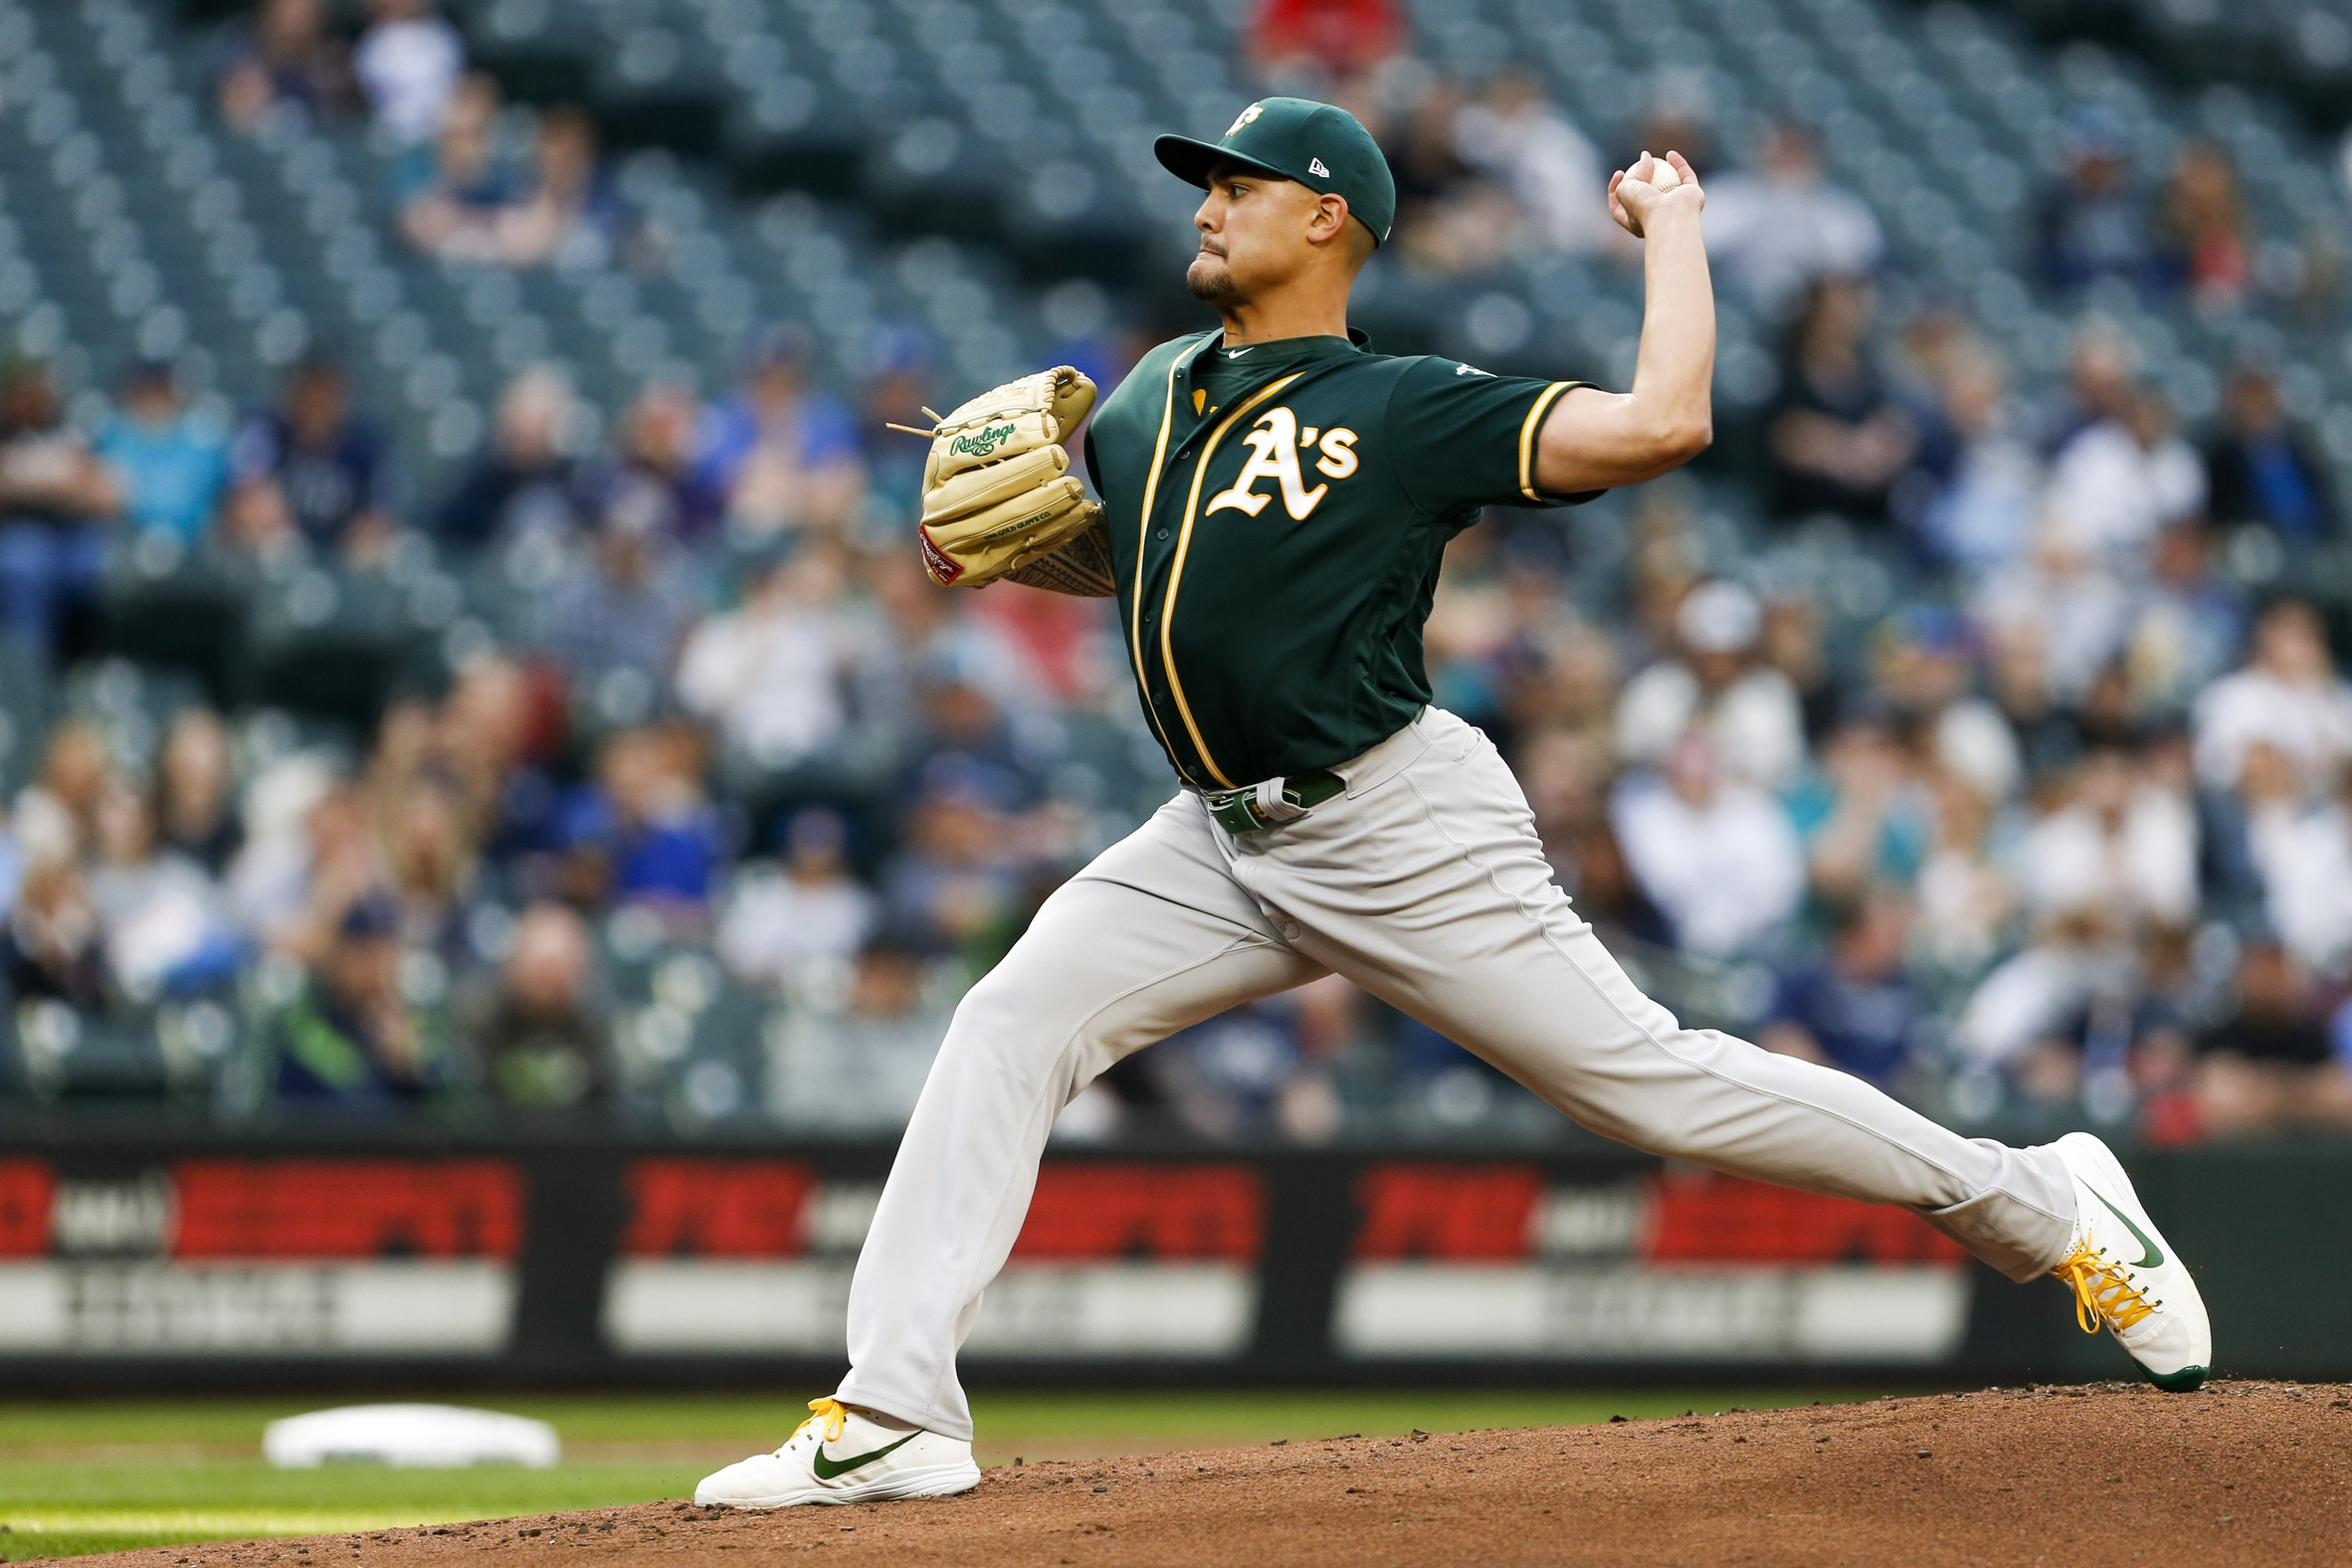 May 3, 2018; Seattle, WA, USA; Oakland Athletics starting pitcher Sean Manaea (55) throws against the Seattle Mariners during the first inning at Safeco Field. Mandatory Credit: Joe Nicholson-USA TODAY Sports